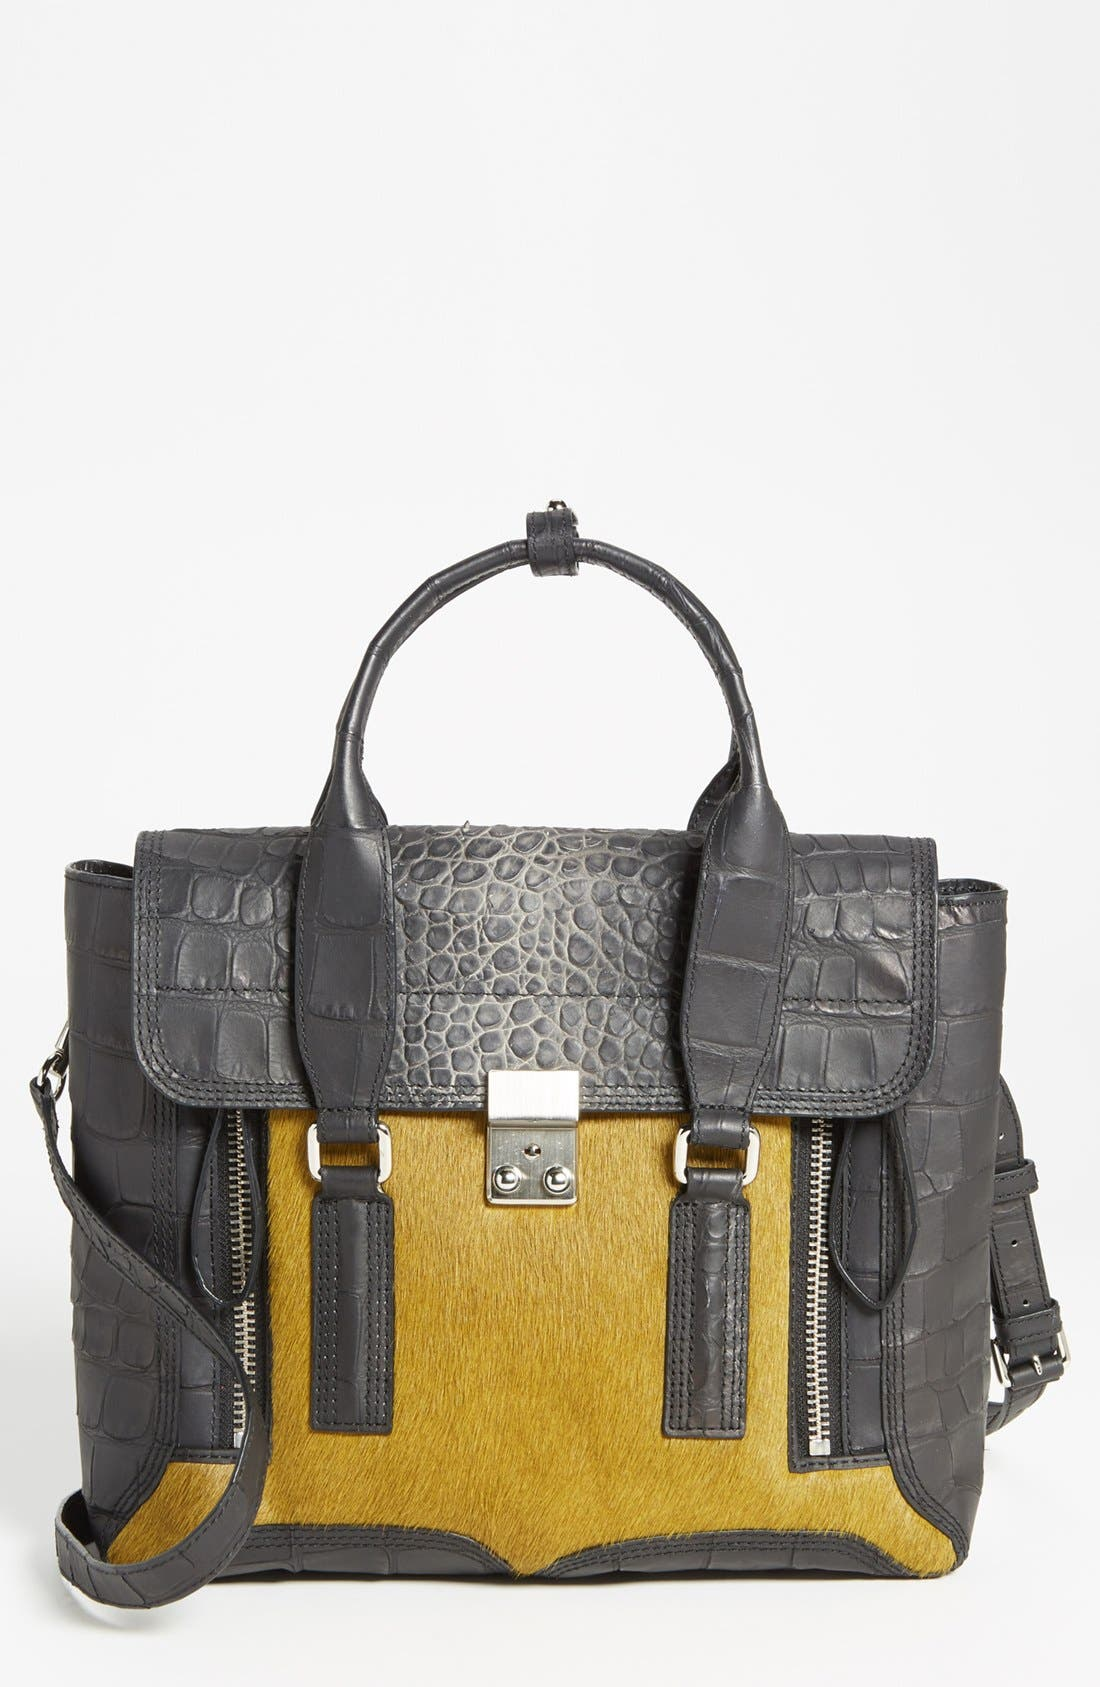 Main Image - 3.1 Phillip Lim 'Pashli - Medium' Calf Hair & Leather Satchel